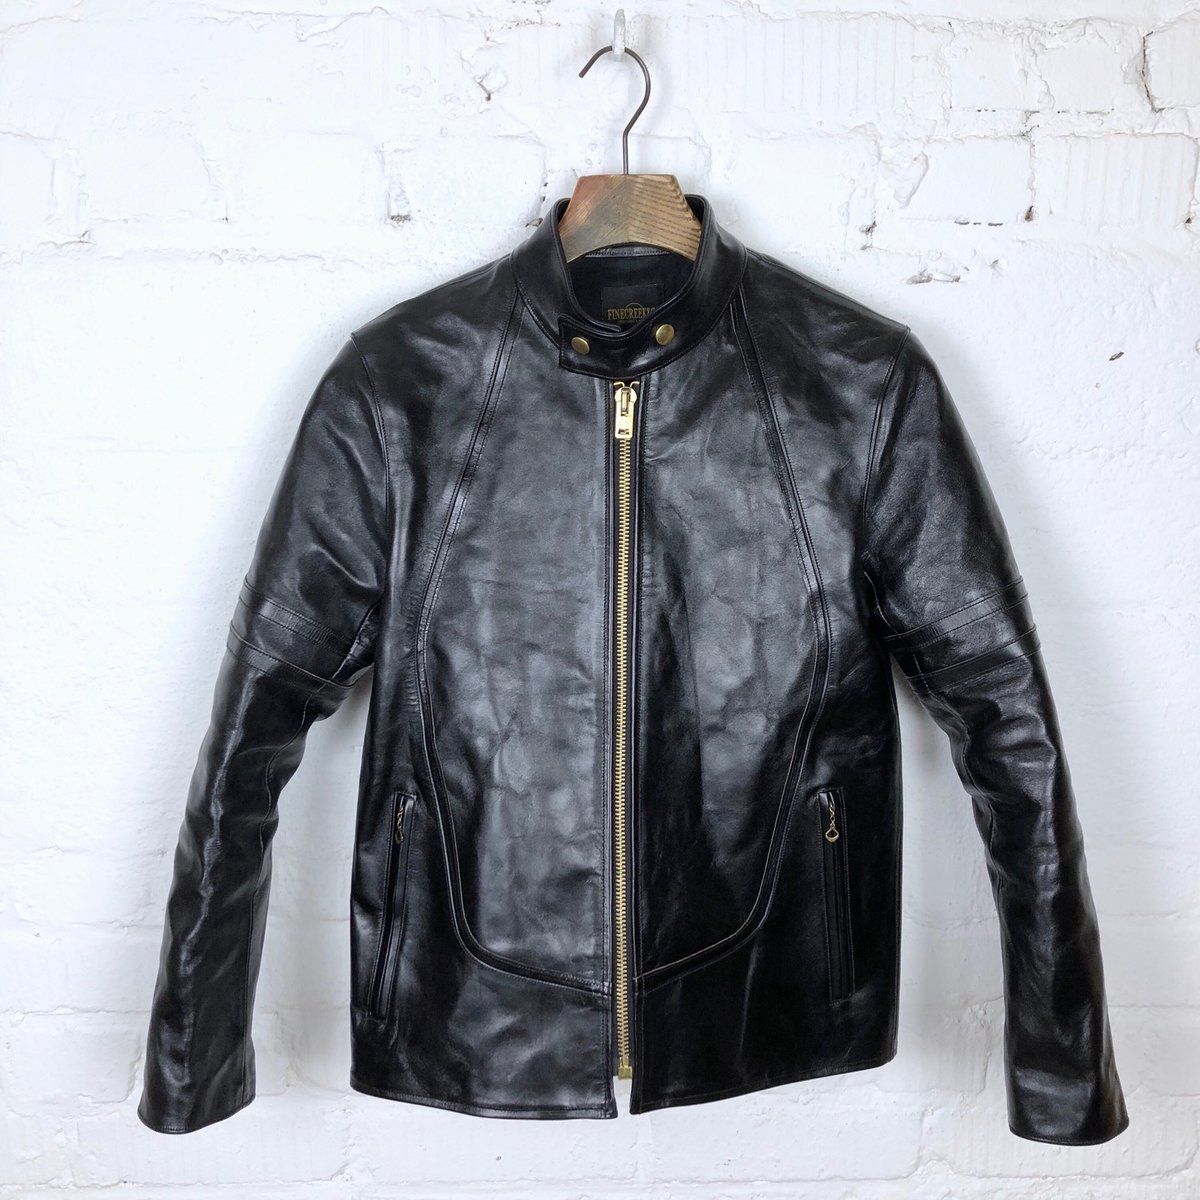 fine-creek-and-co-roberts-leather-jacket-9.jpg